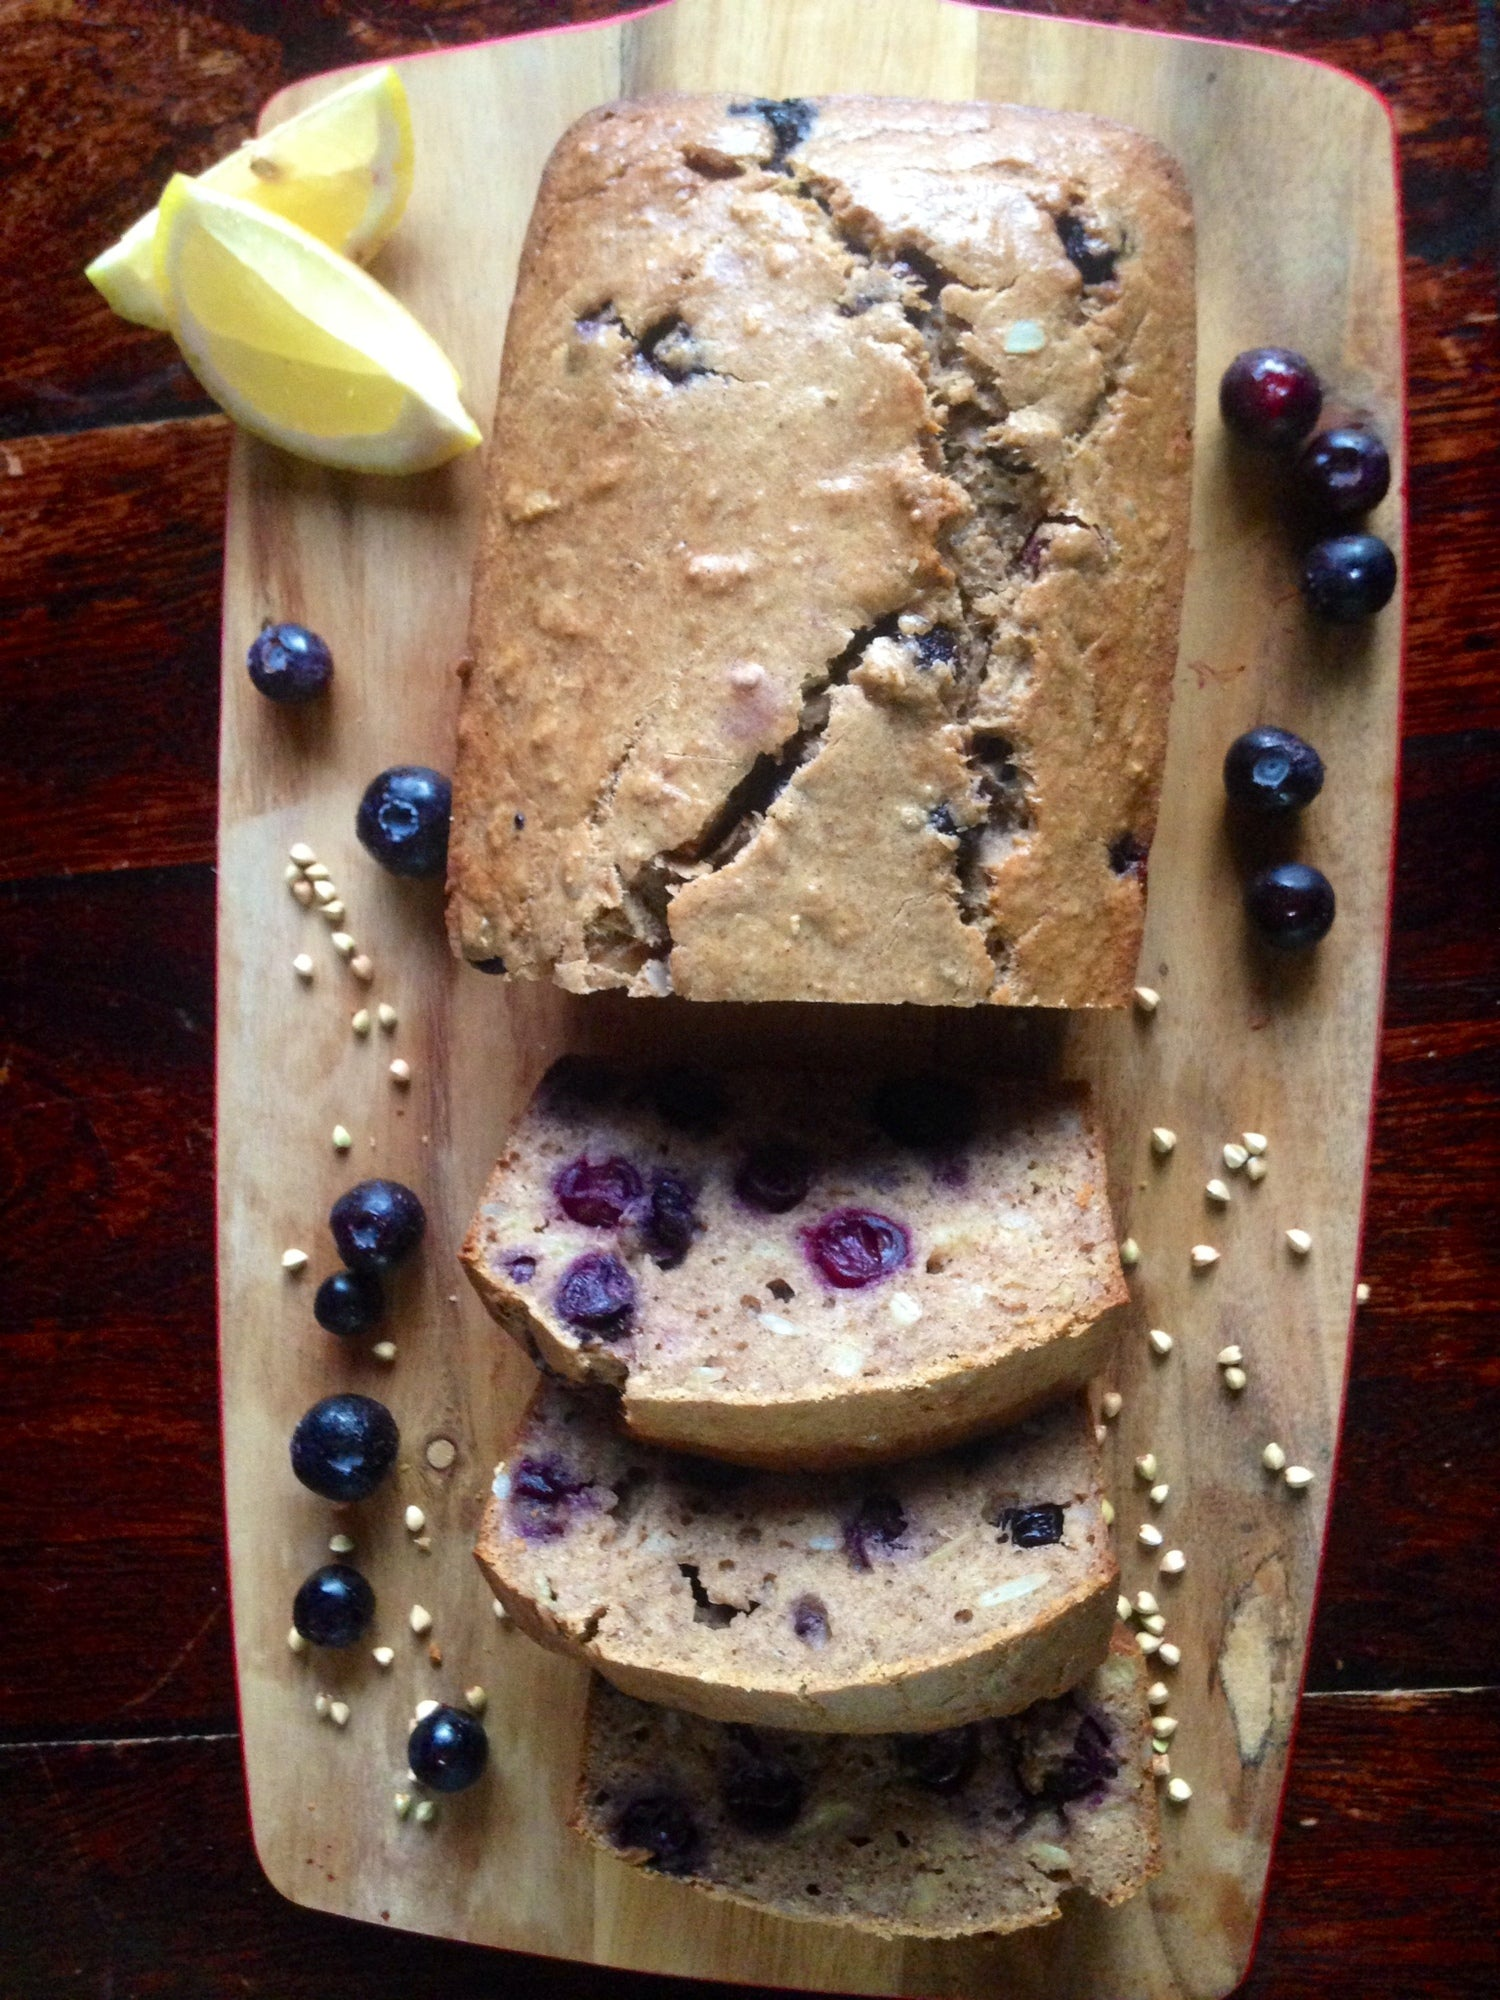 Blueberry and Buckwheat Loaf with a Touch of Lemon